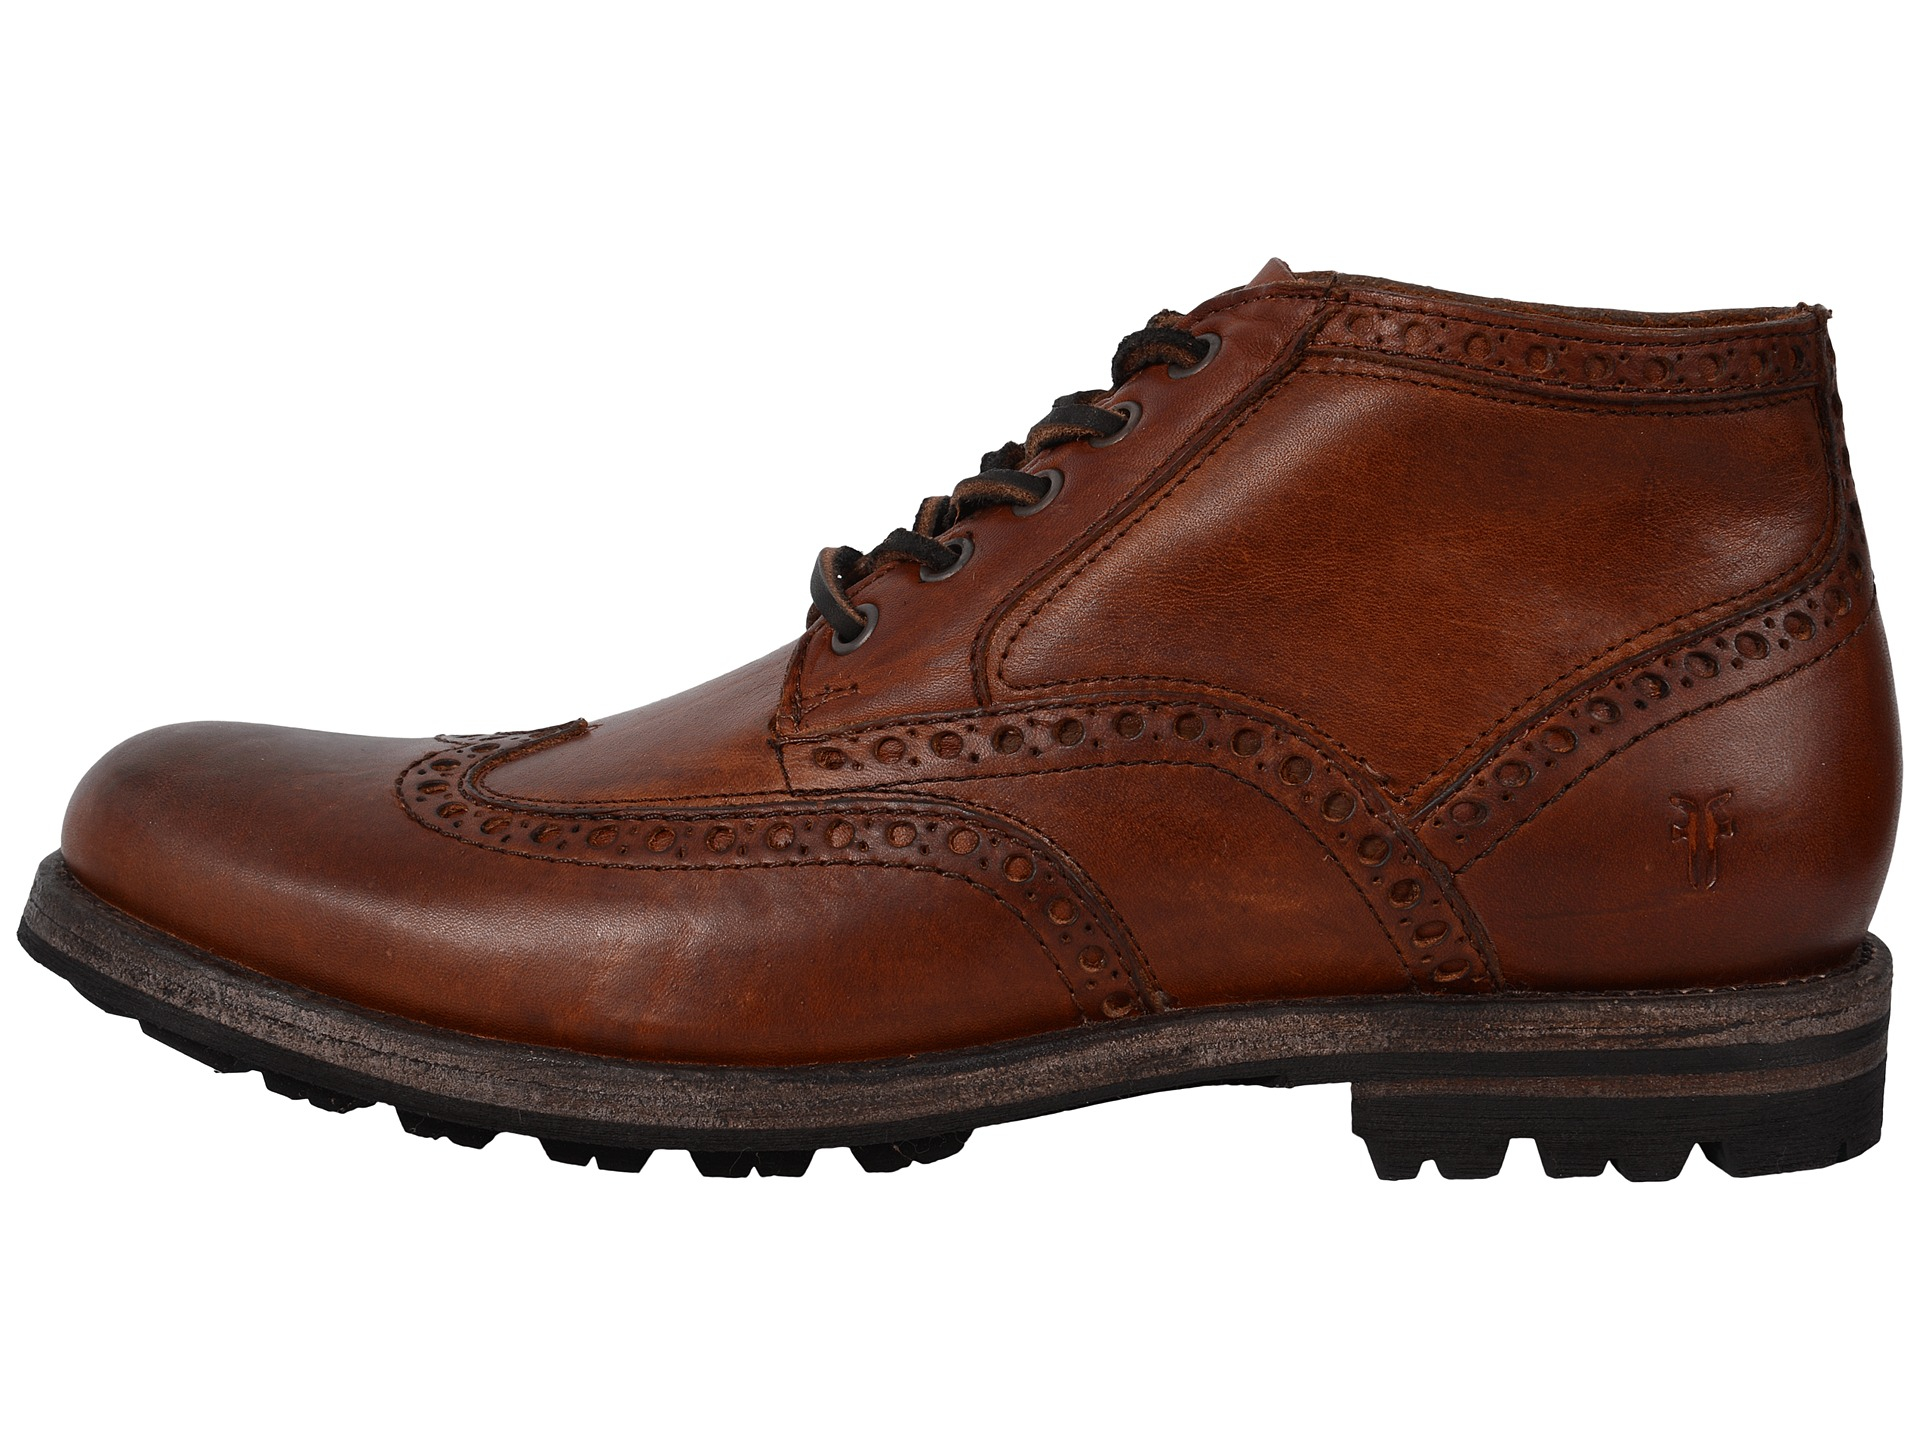 Frye Phillip Lug Wingtip Chukka In Brown For Men Lyst